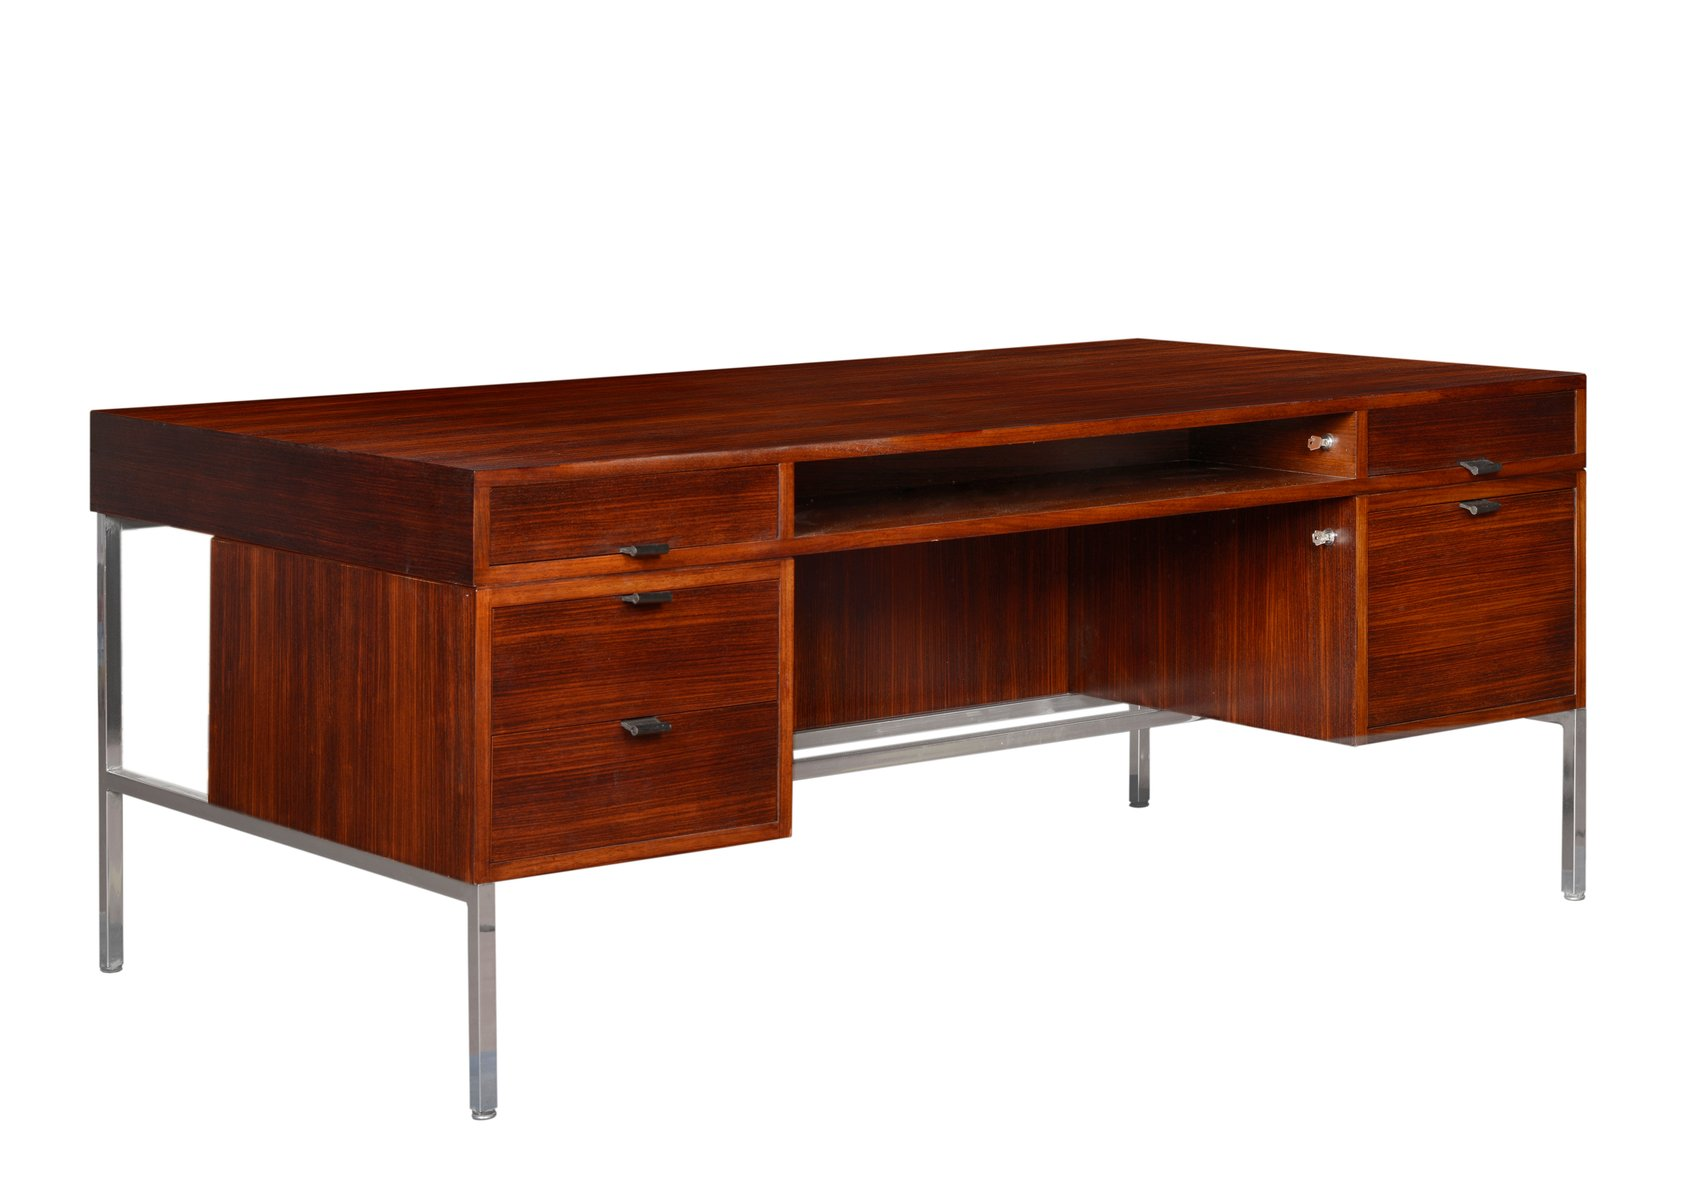 Double sided presidential desk by joseph andré motte for dassas 1960s